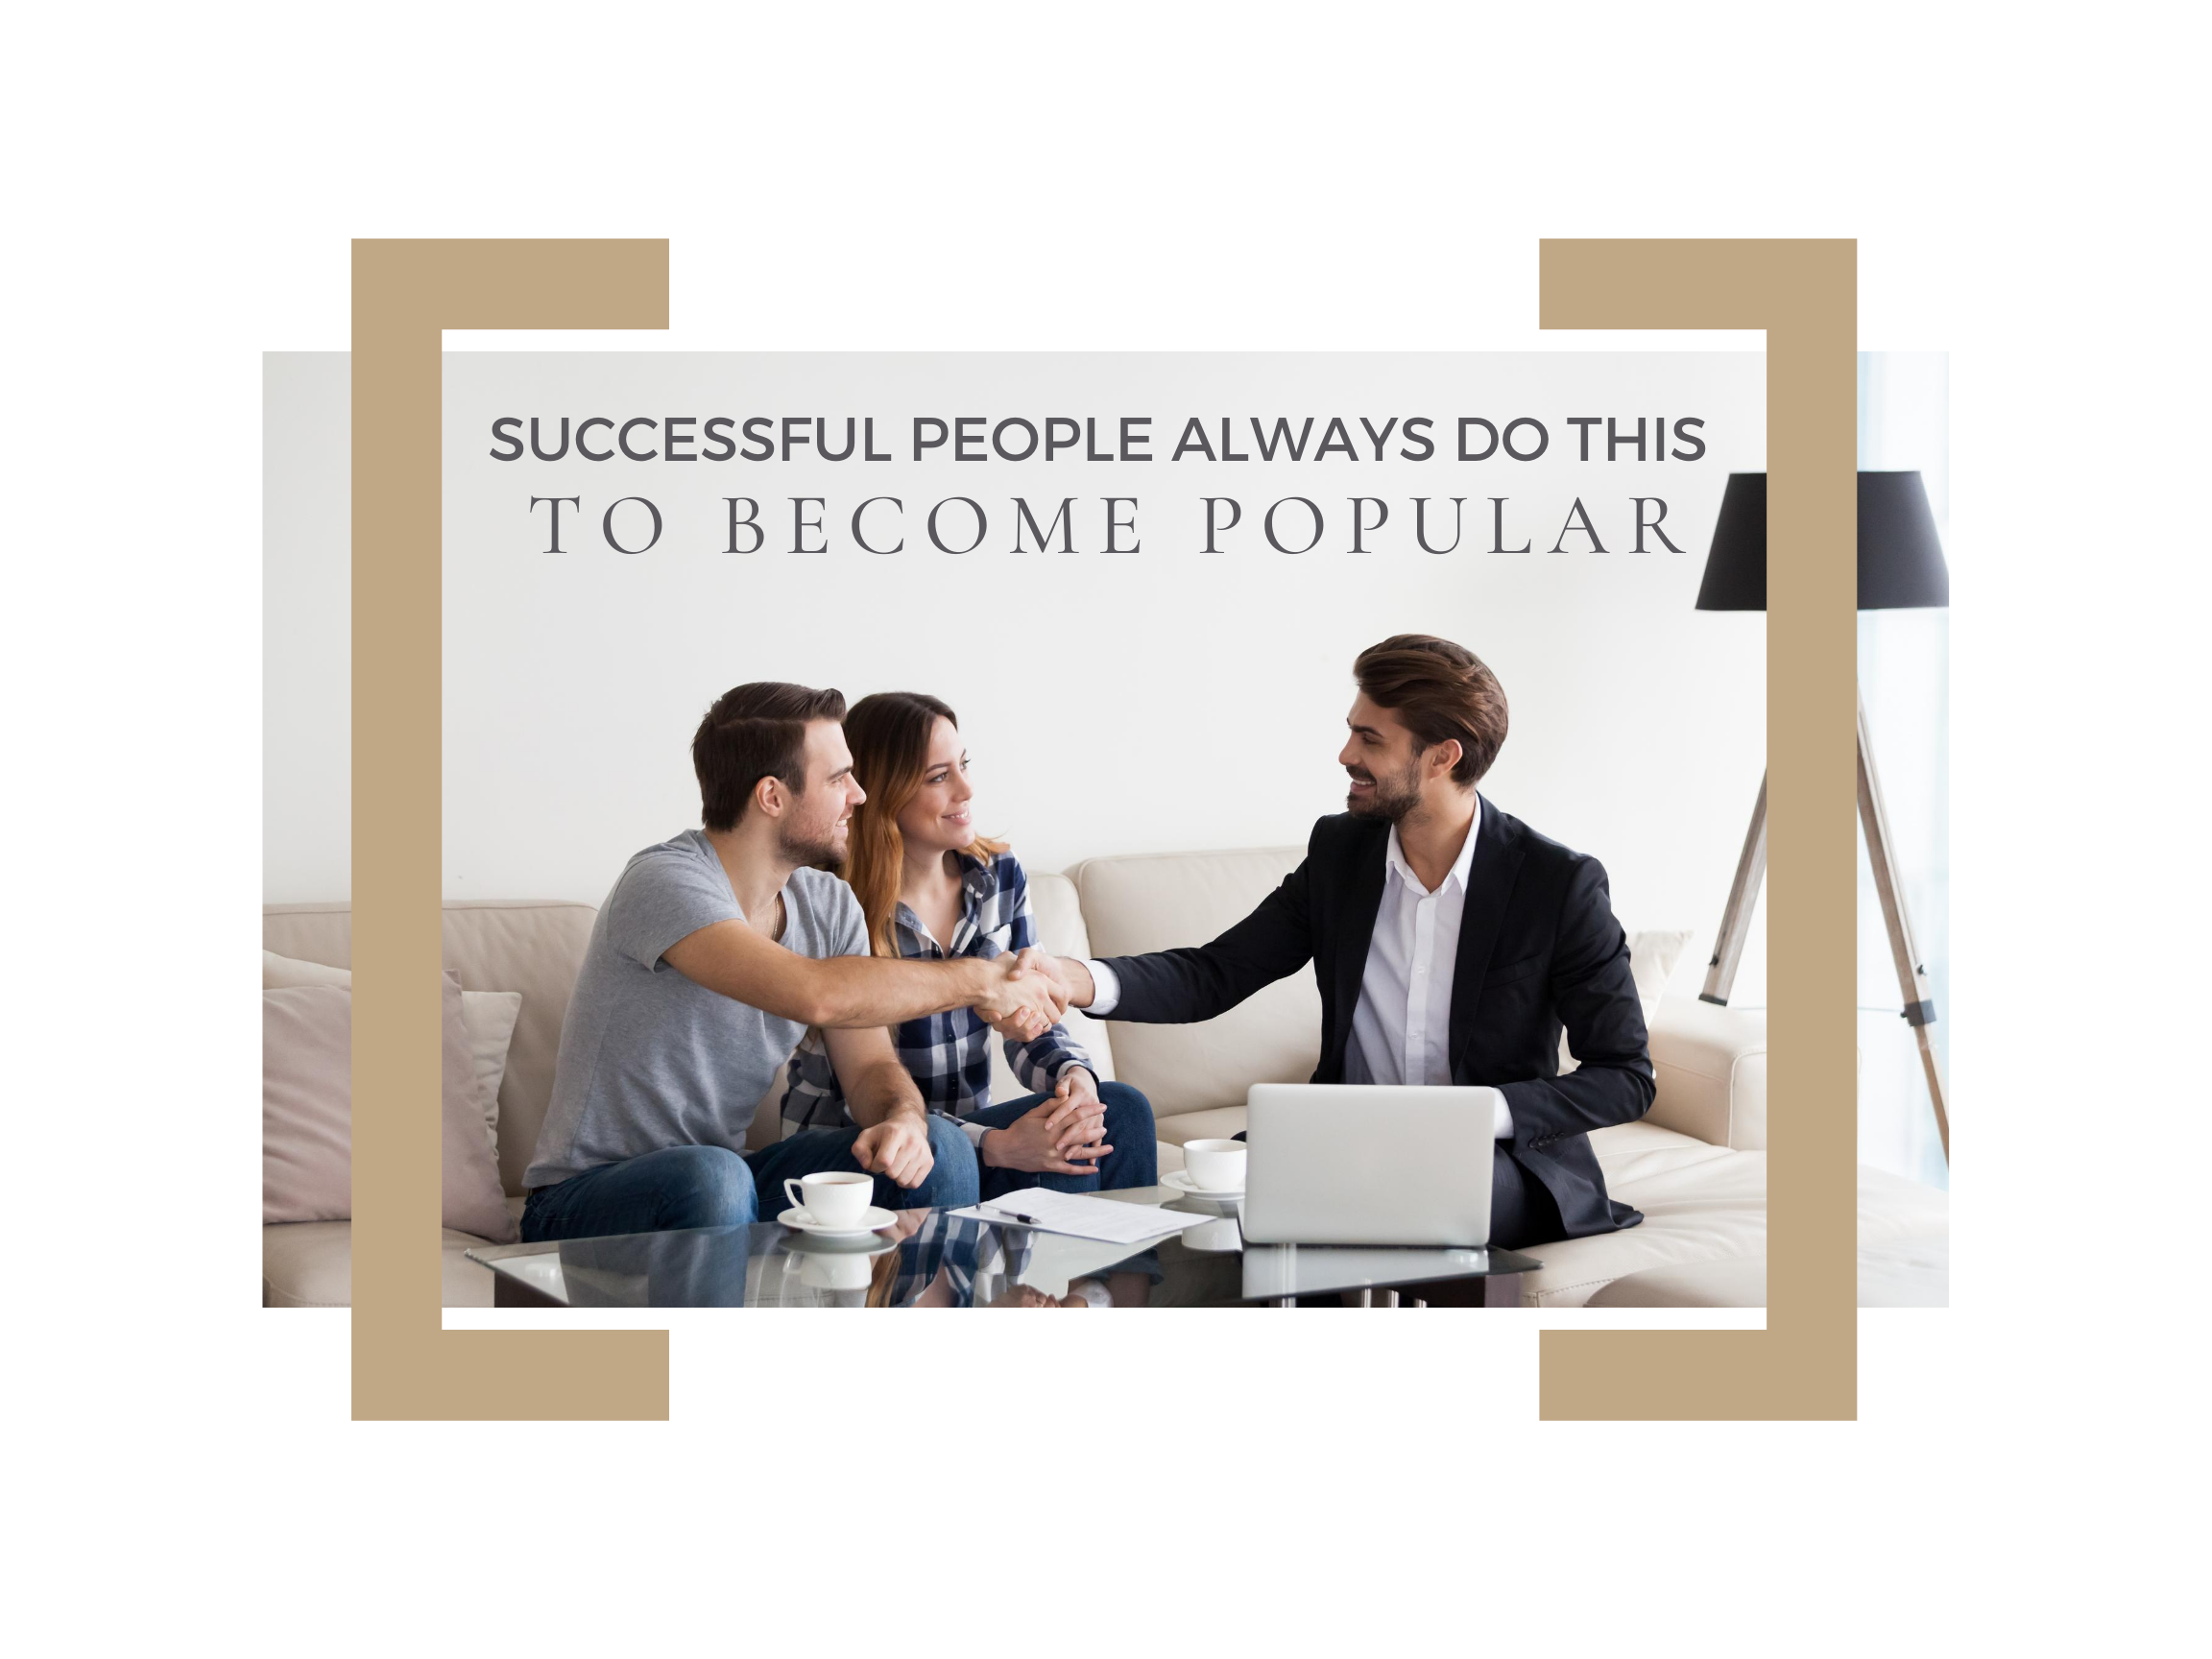 Successful People Always do This to Become Popular